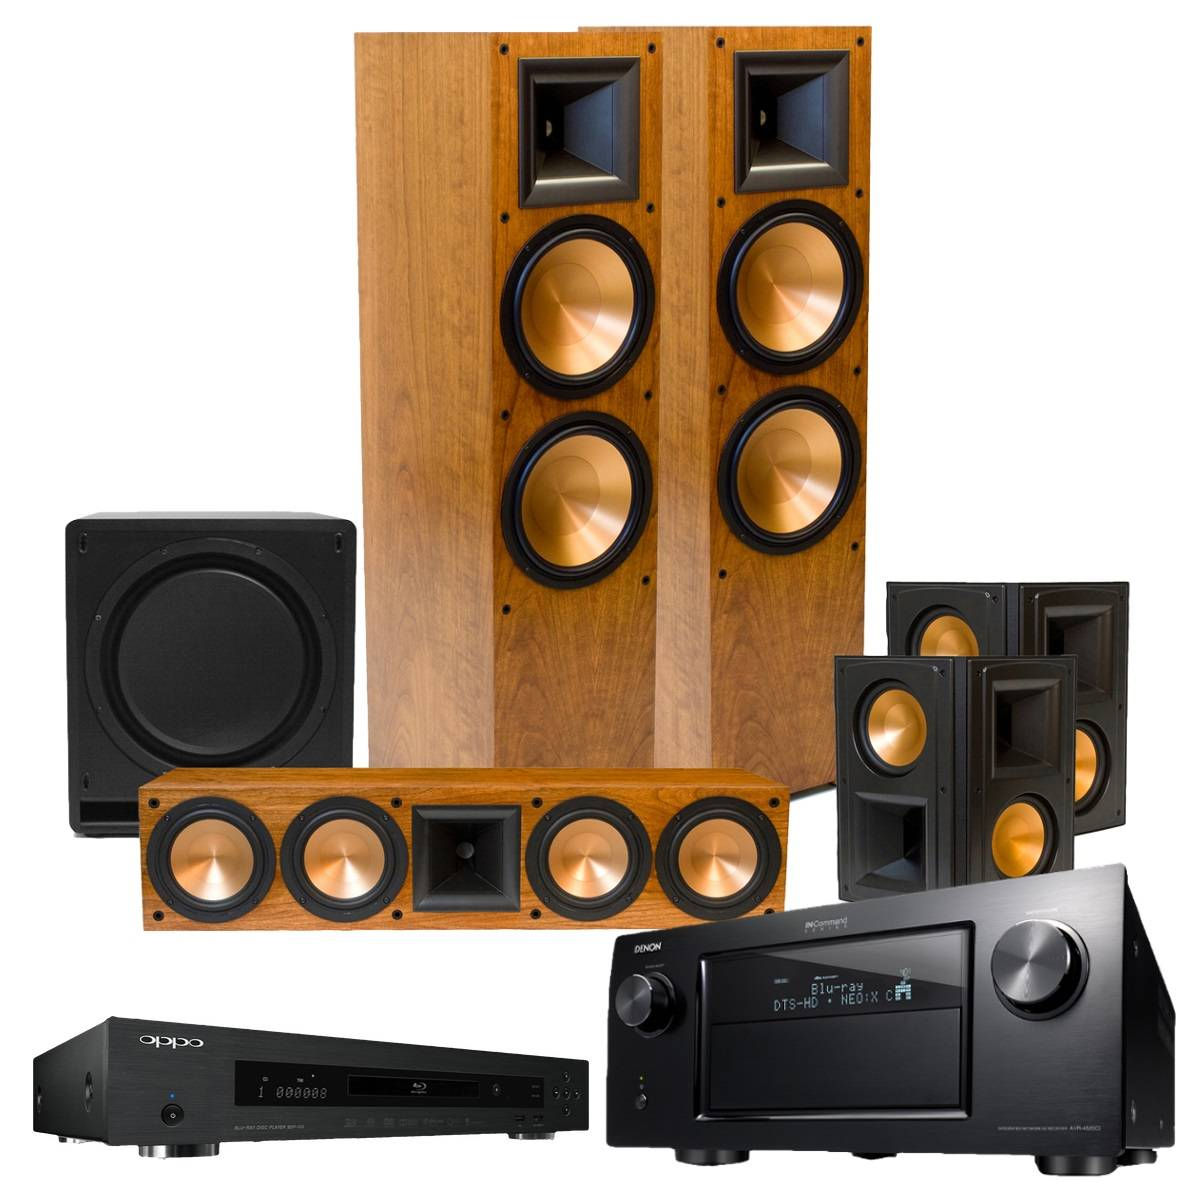 RF-7 II Reference Series 7.1 Home Theater System